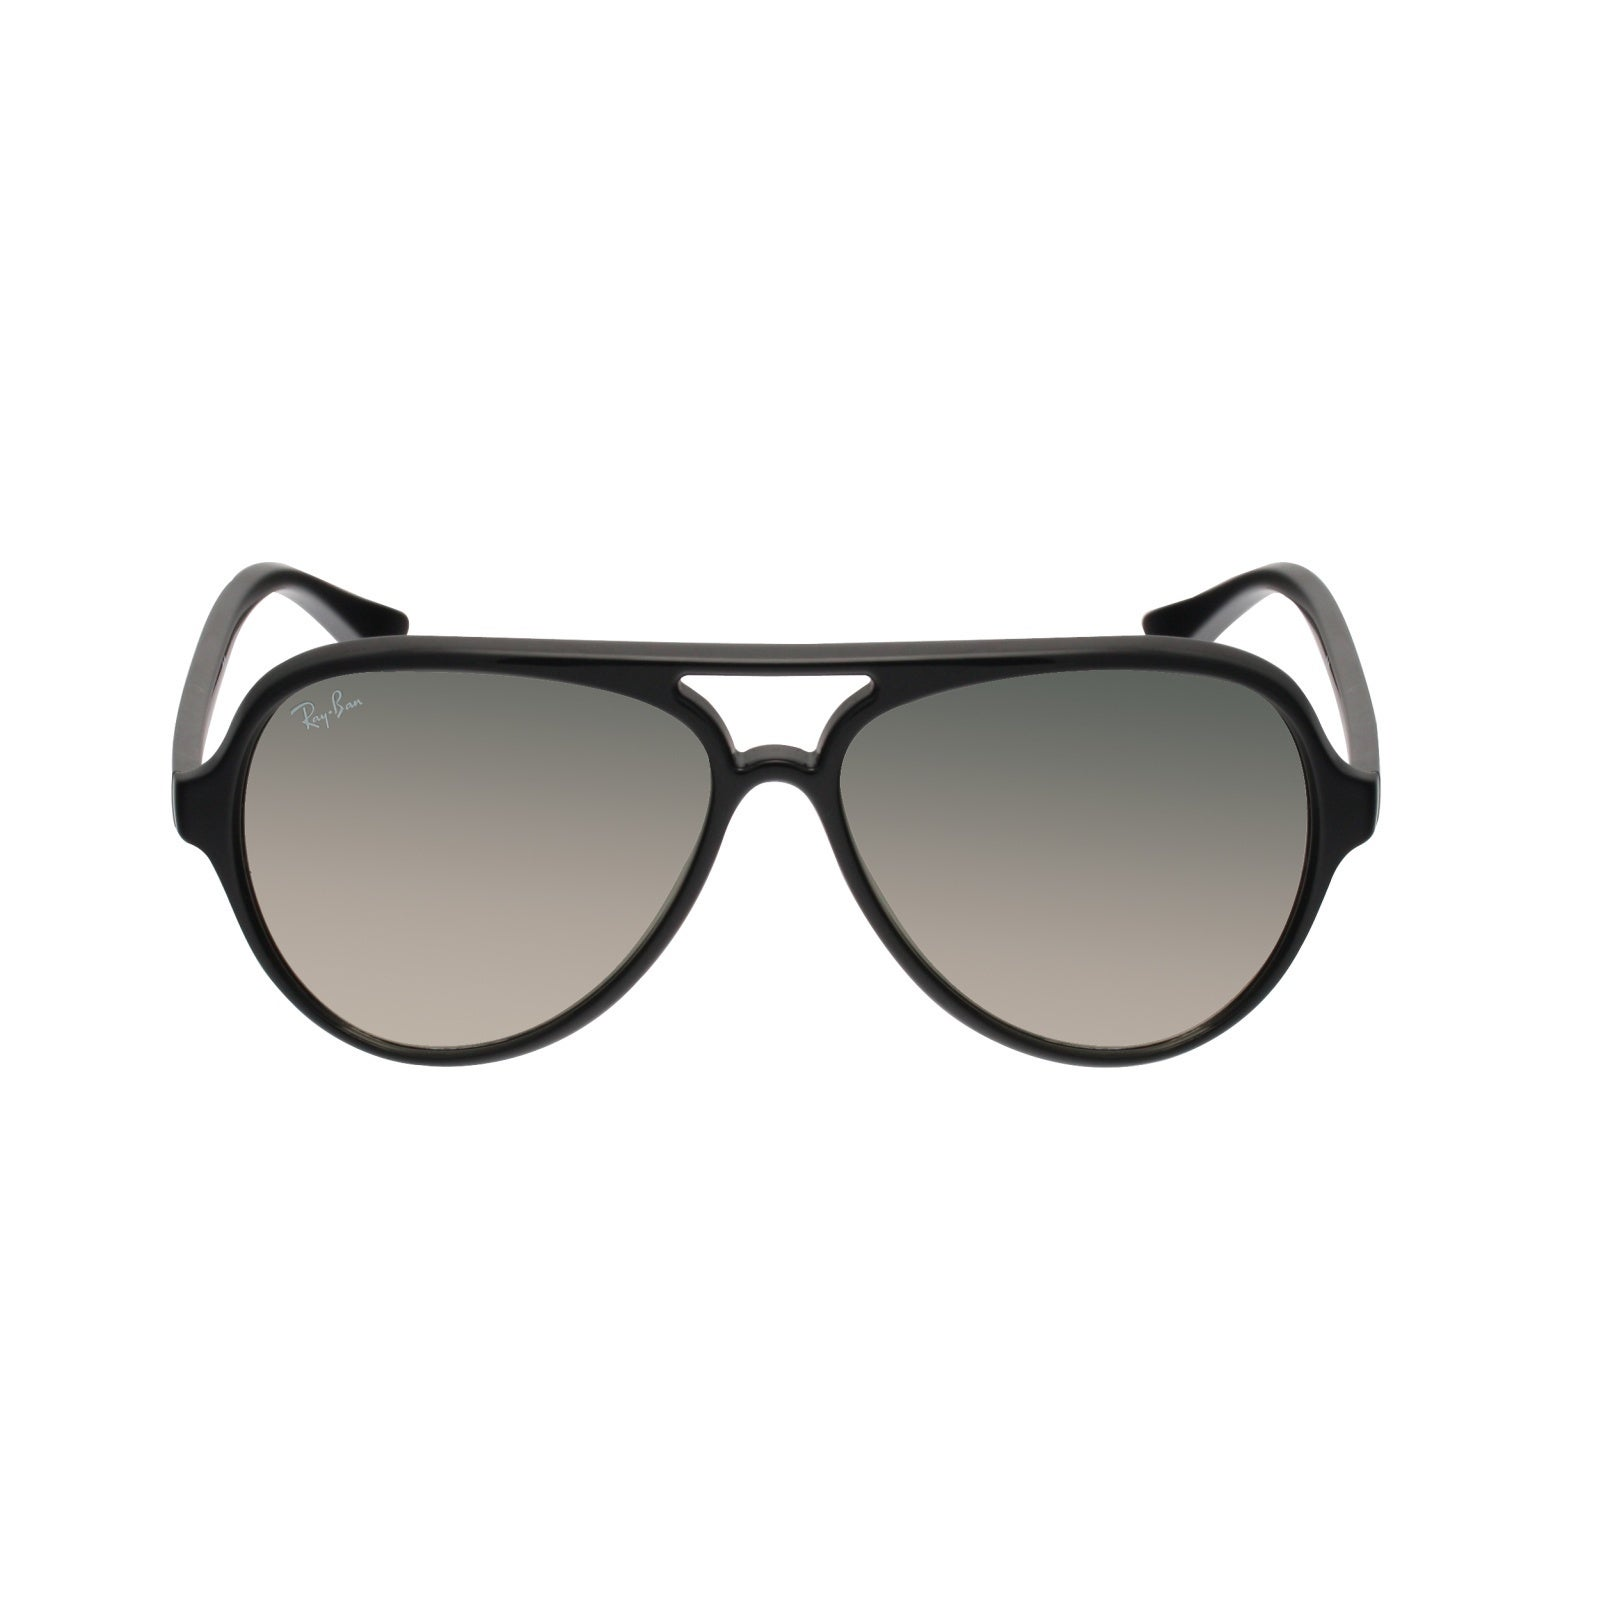 3af820da4ec12 ... sunglasses 50b54 54295  authentic shop ray ban rb4125 601 32 cats 5000 black  frame light grey gradient 59mm lens